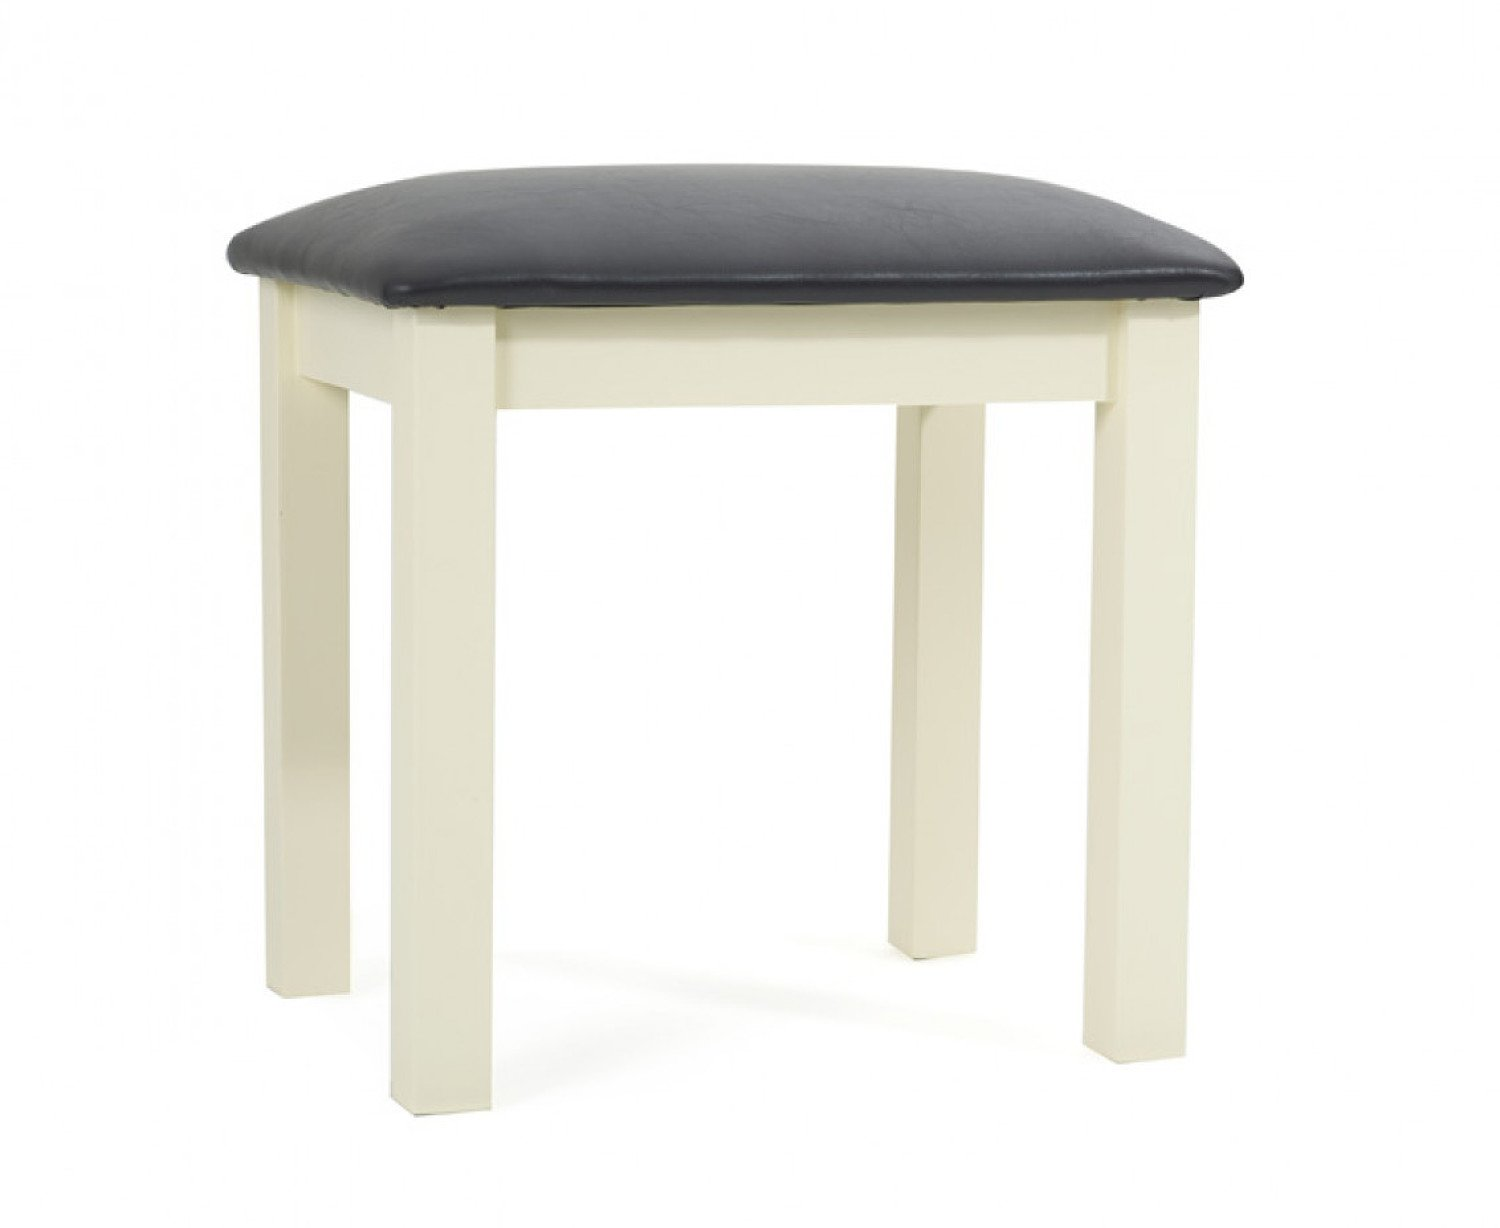 SALE - Get the Somerset Oak and Cream Dressing Table Stool!